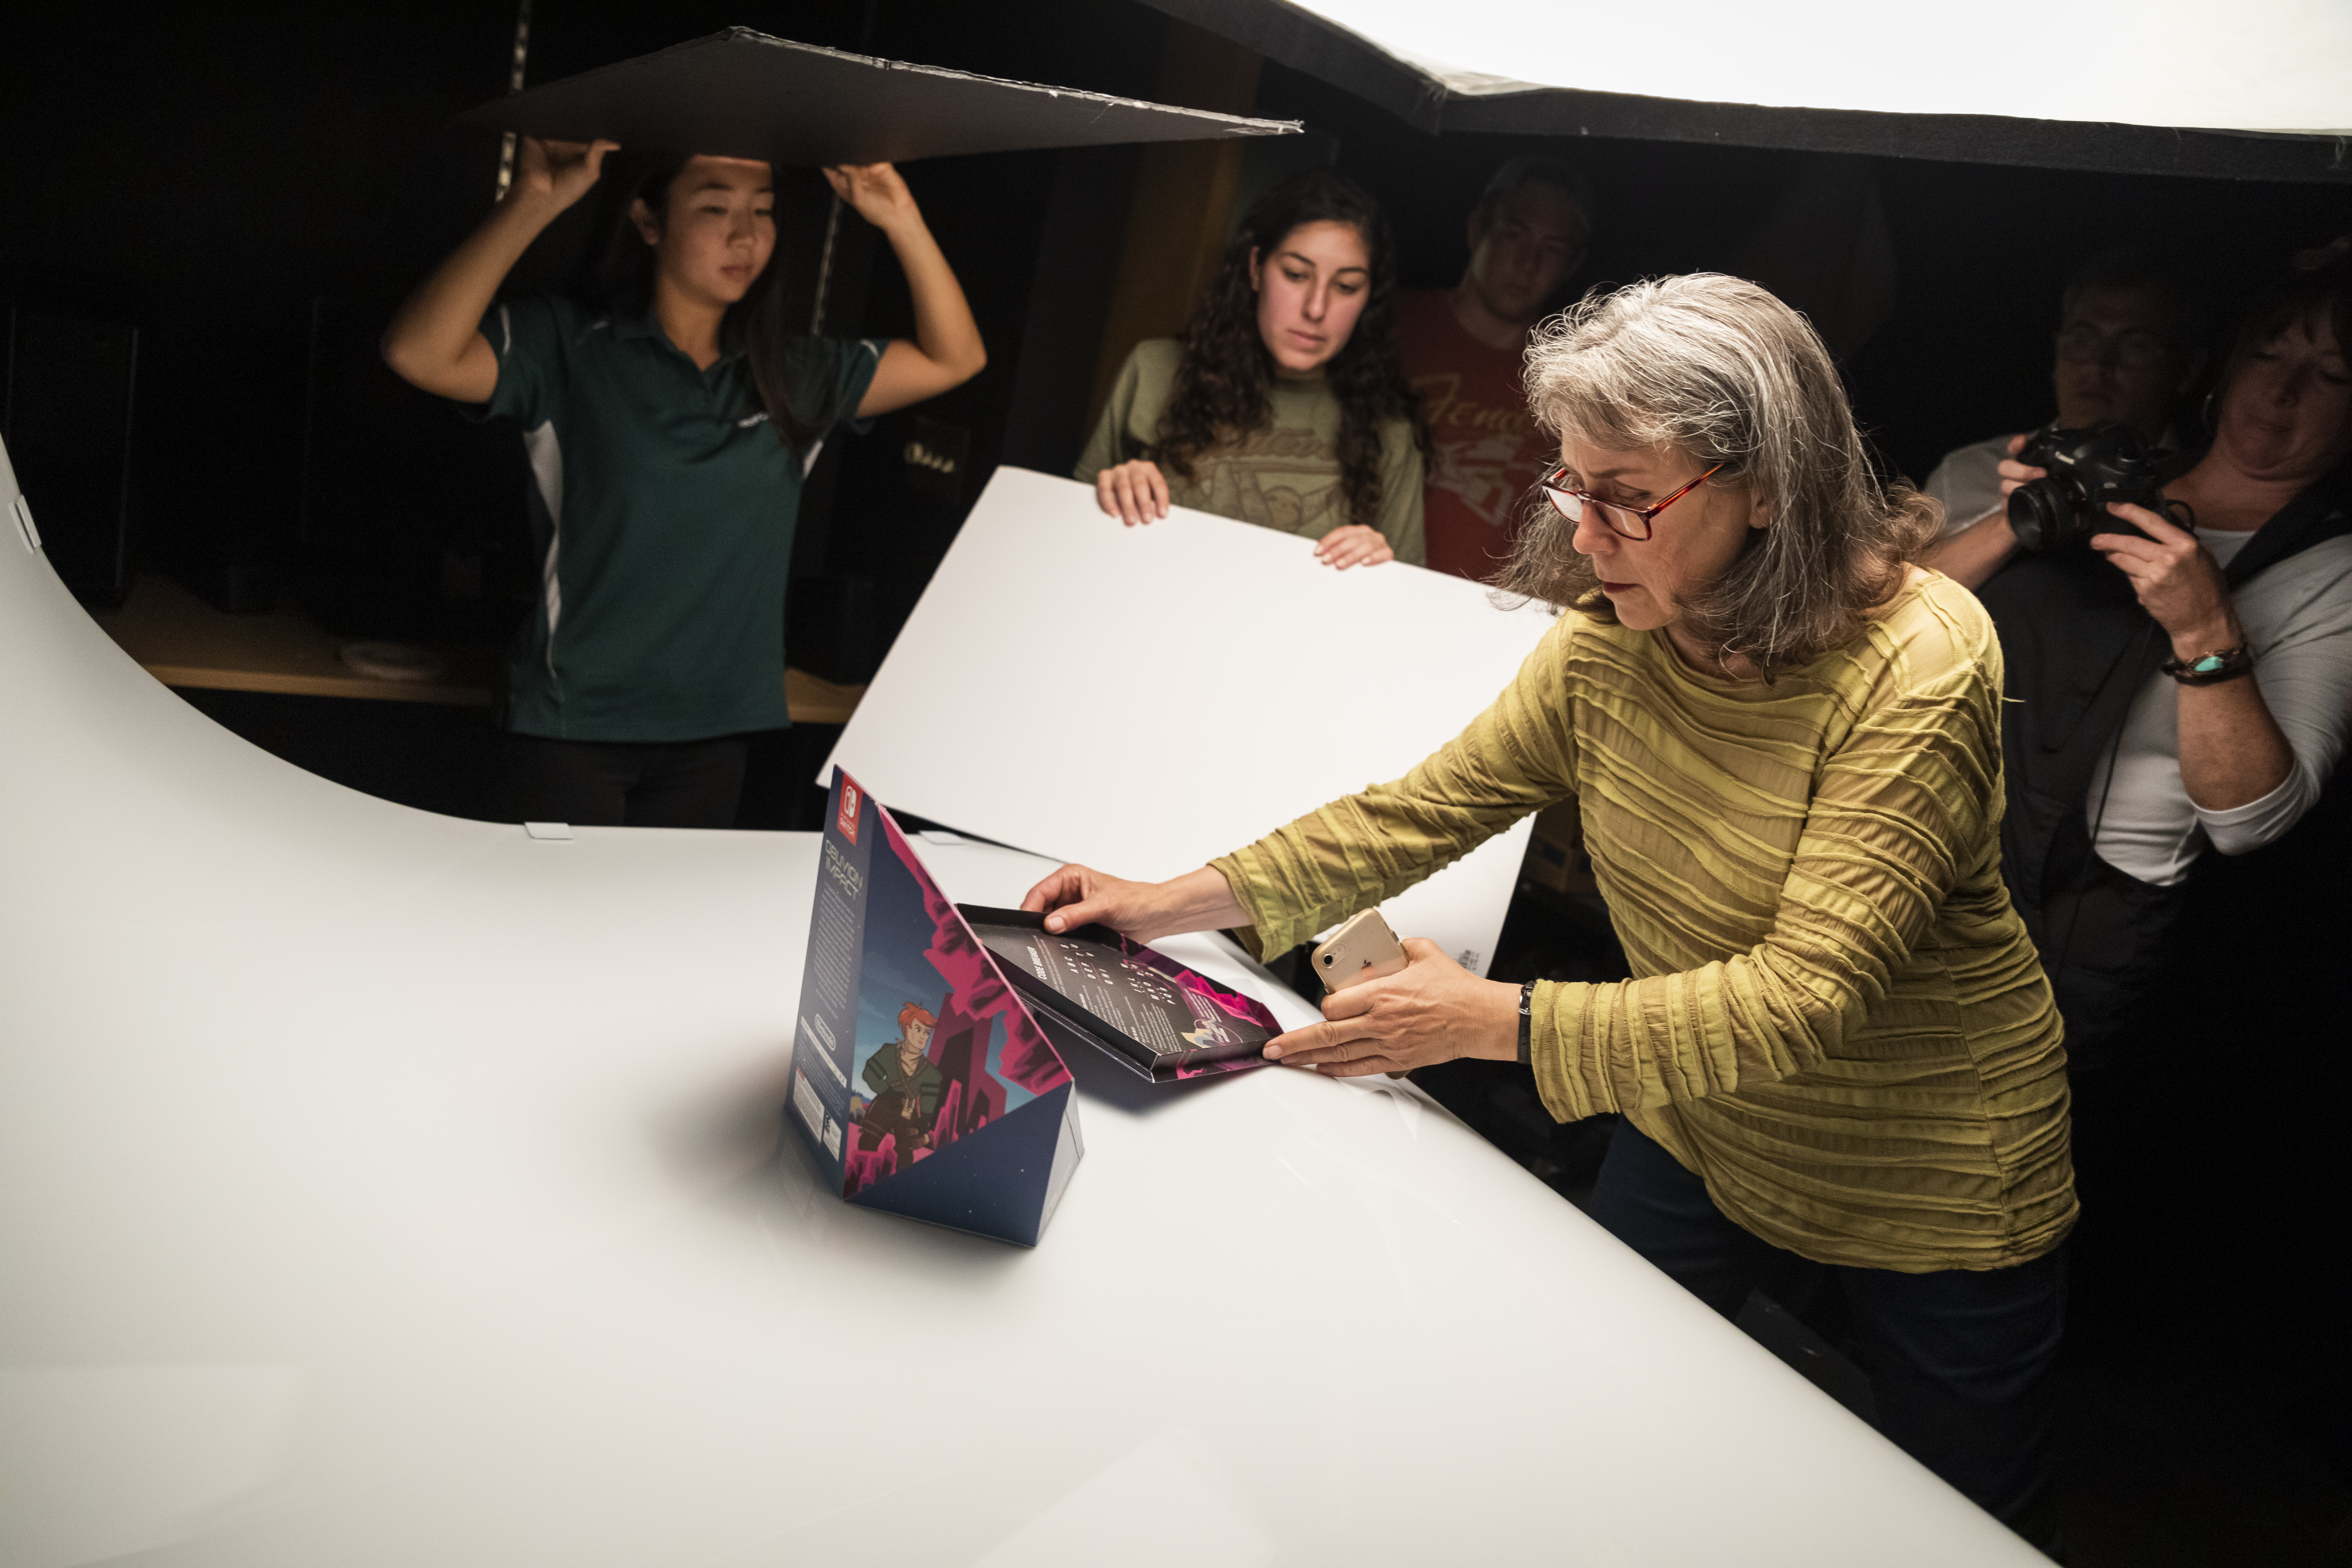 Professor LaPorte works with students to photograph their packaging projects